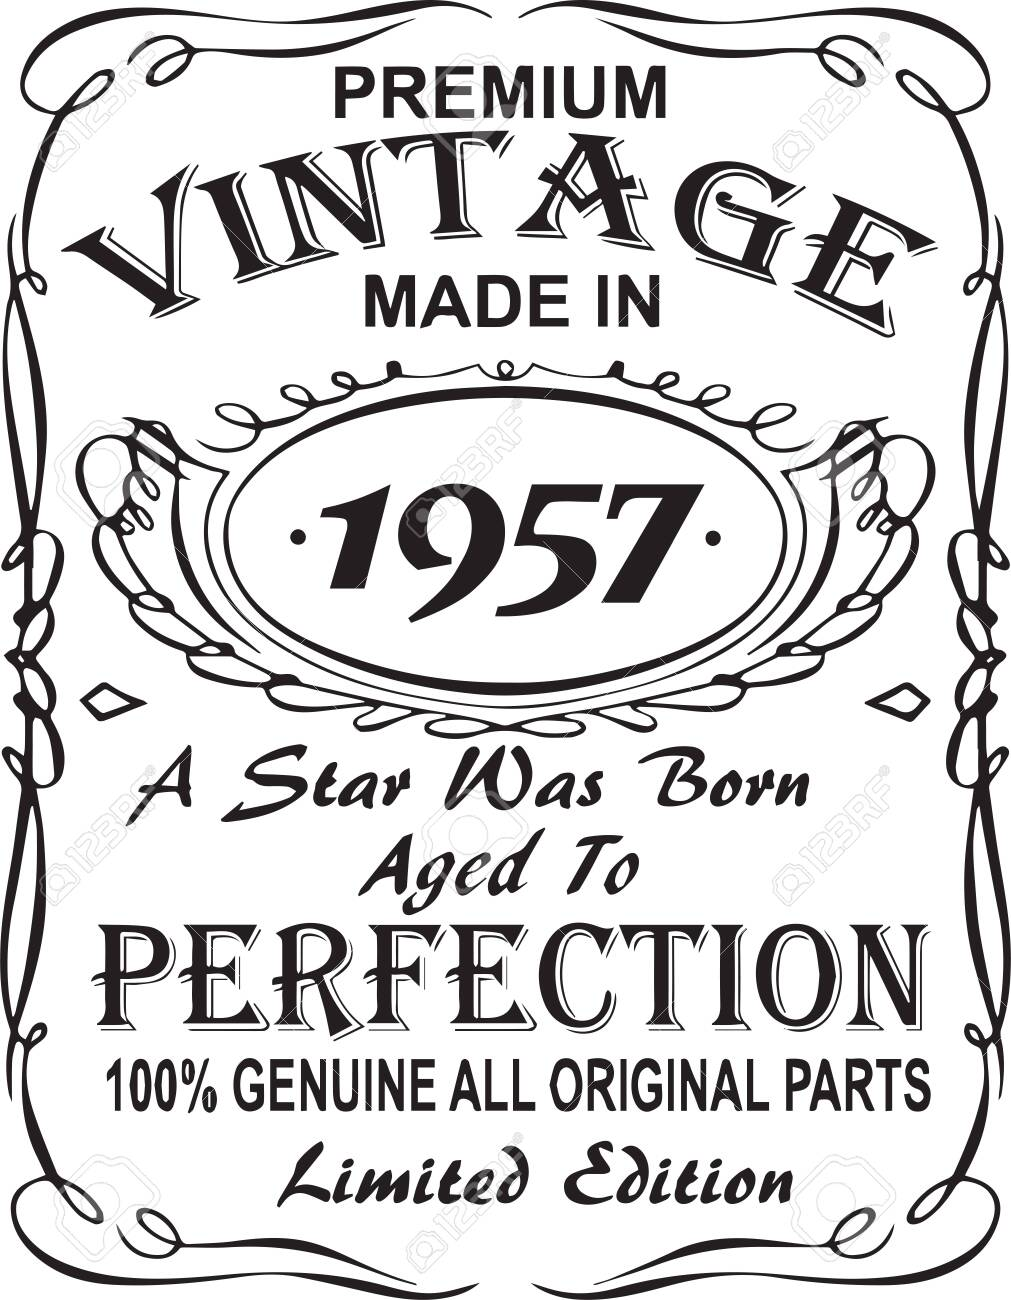 Vintage 1947 Svg Birthday Svg Limited Edition 1947 Aged Perfection Png Legend Since 1947 Awesome Since 1947 Bday Svg The Myth